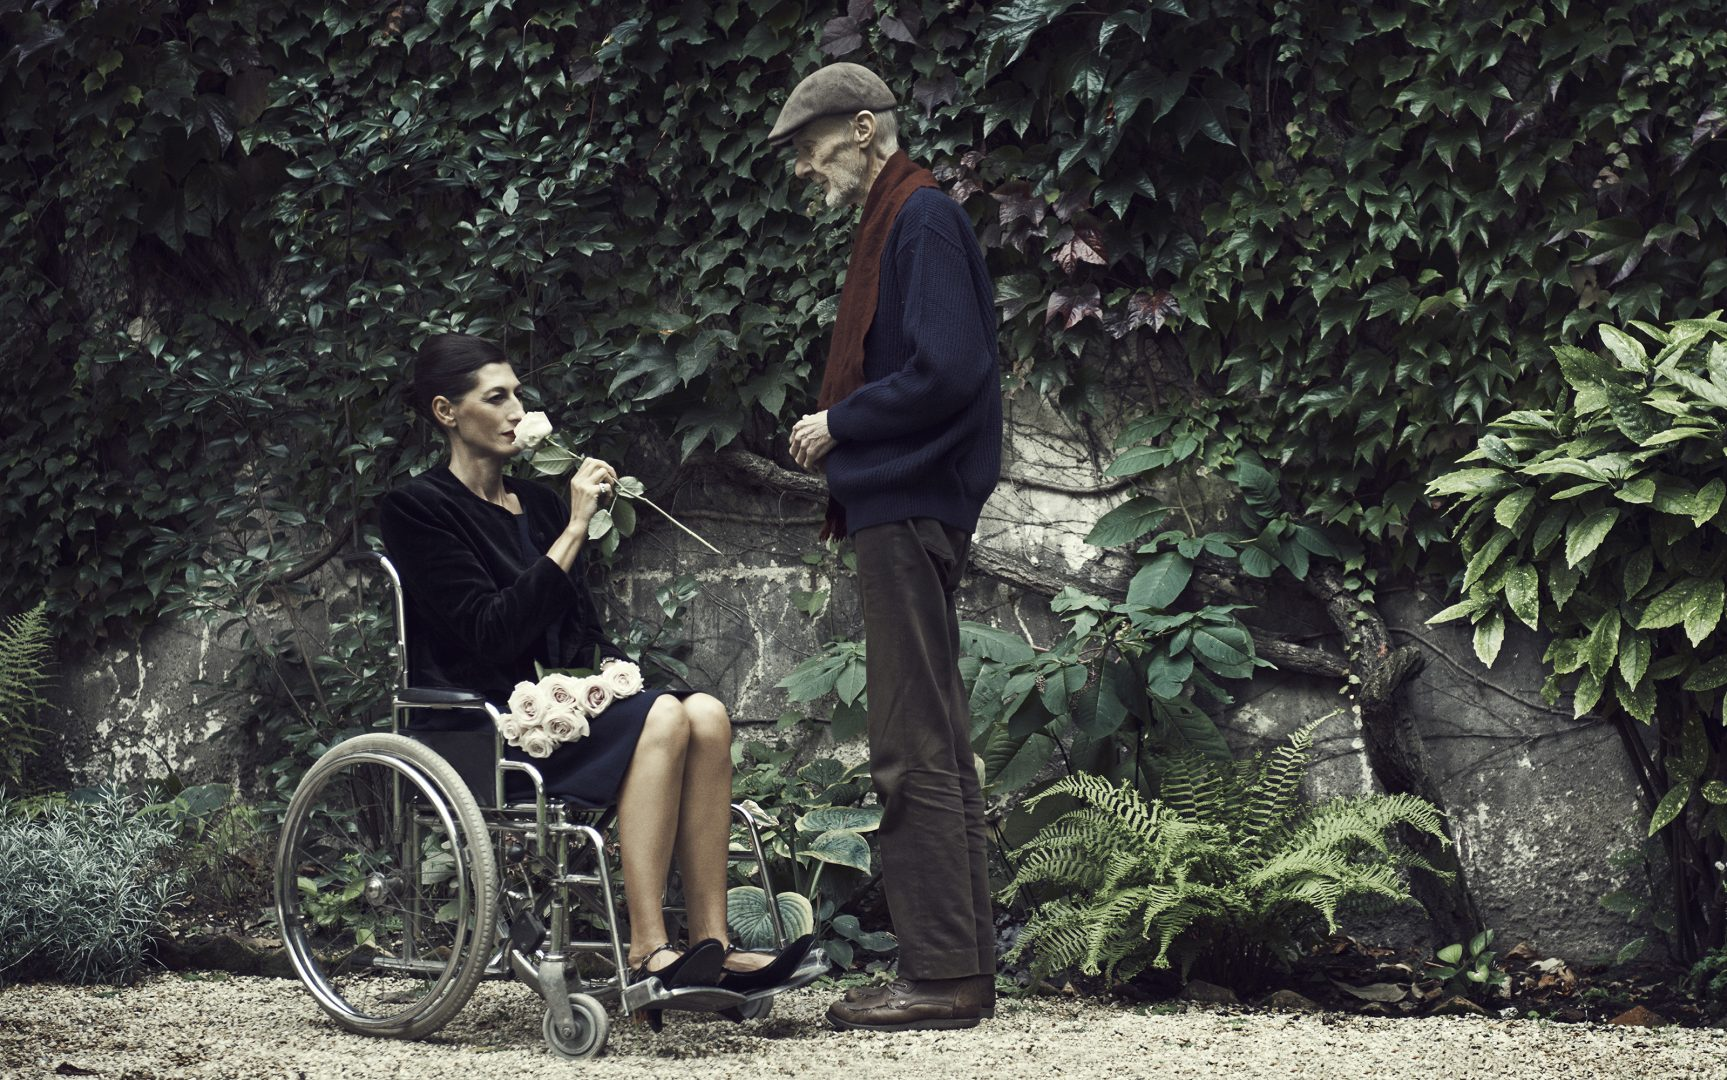 man giving a rose to women in wheelchair by Stefan Rappo